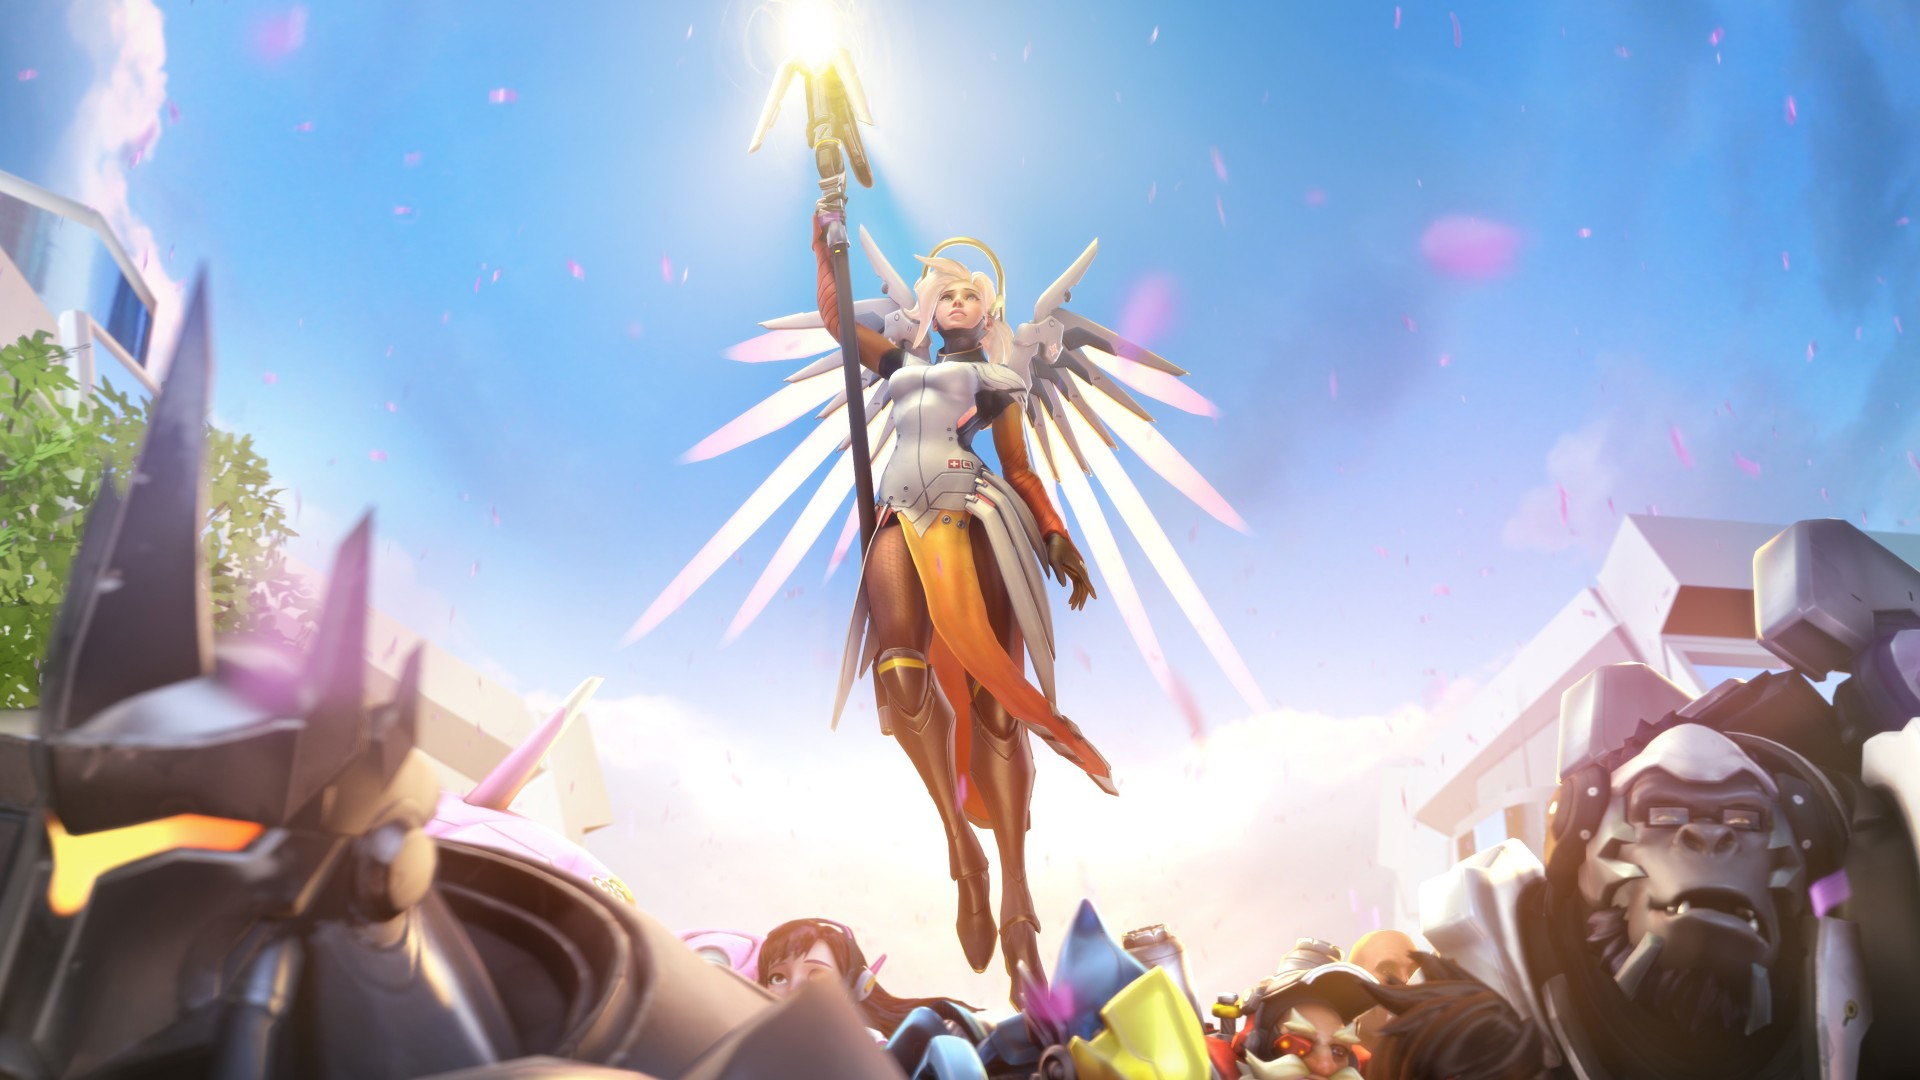 Windows 7 Original Wallpaper Hd Overwatch Mercy 4k Wallpapers Hd Wallpapers Id 20446